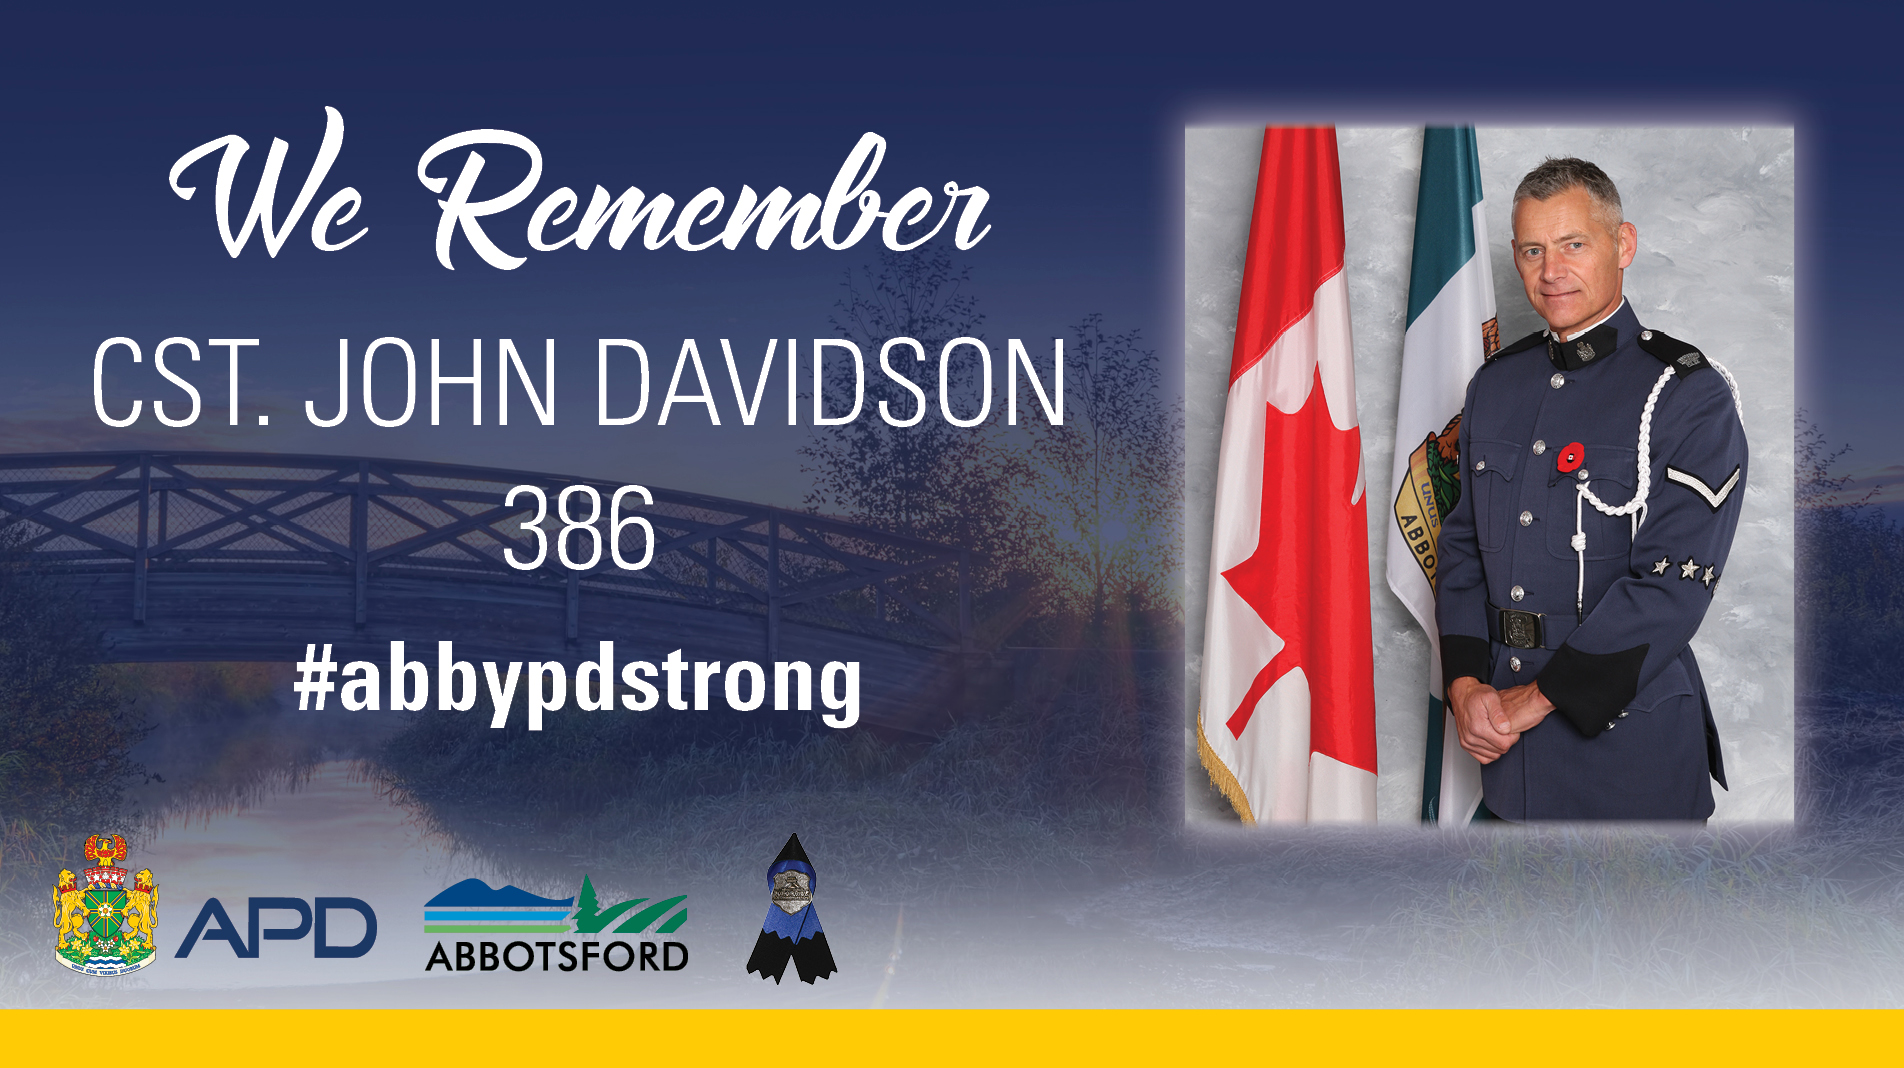 Here's Information on Cst. John Davidson's Celebration of Life